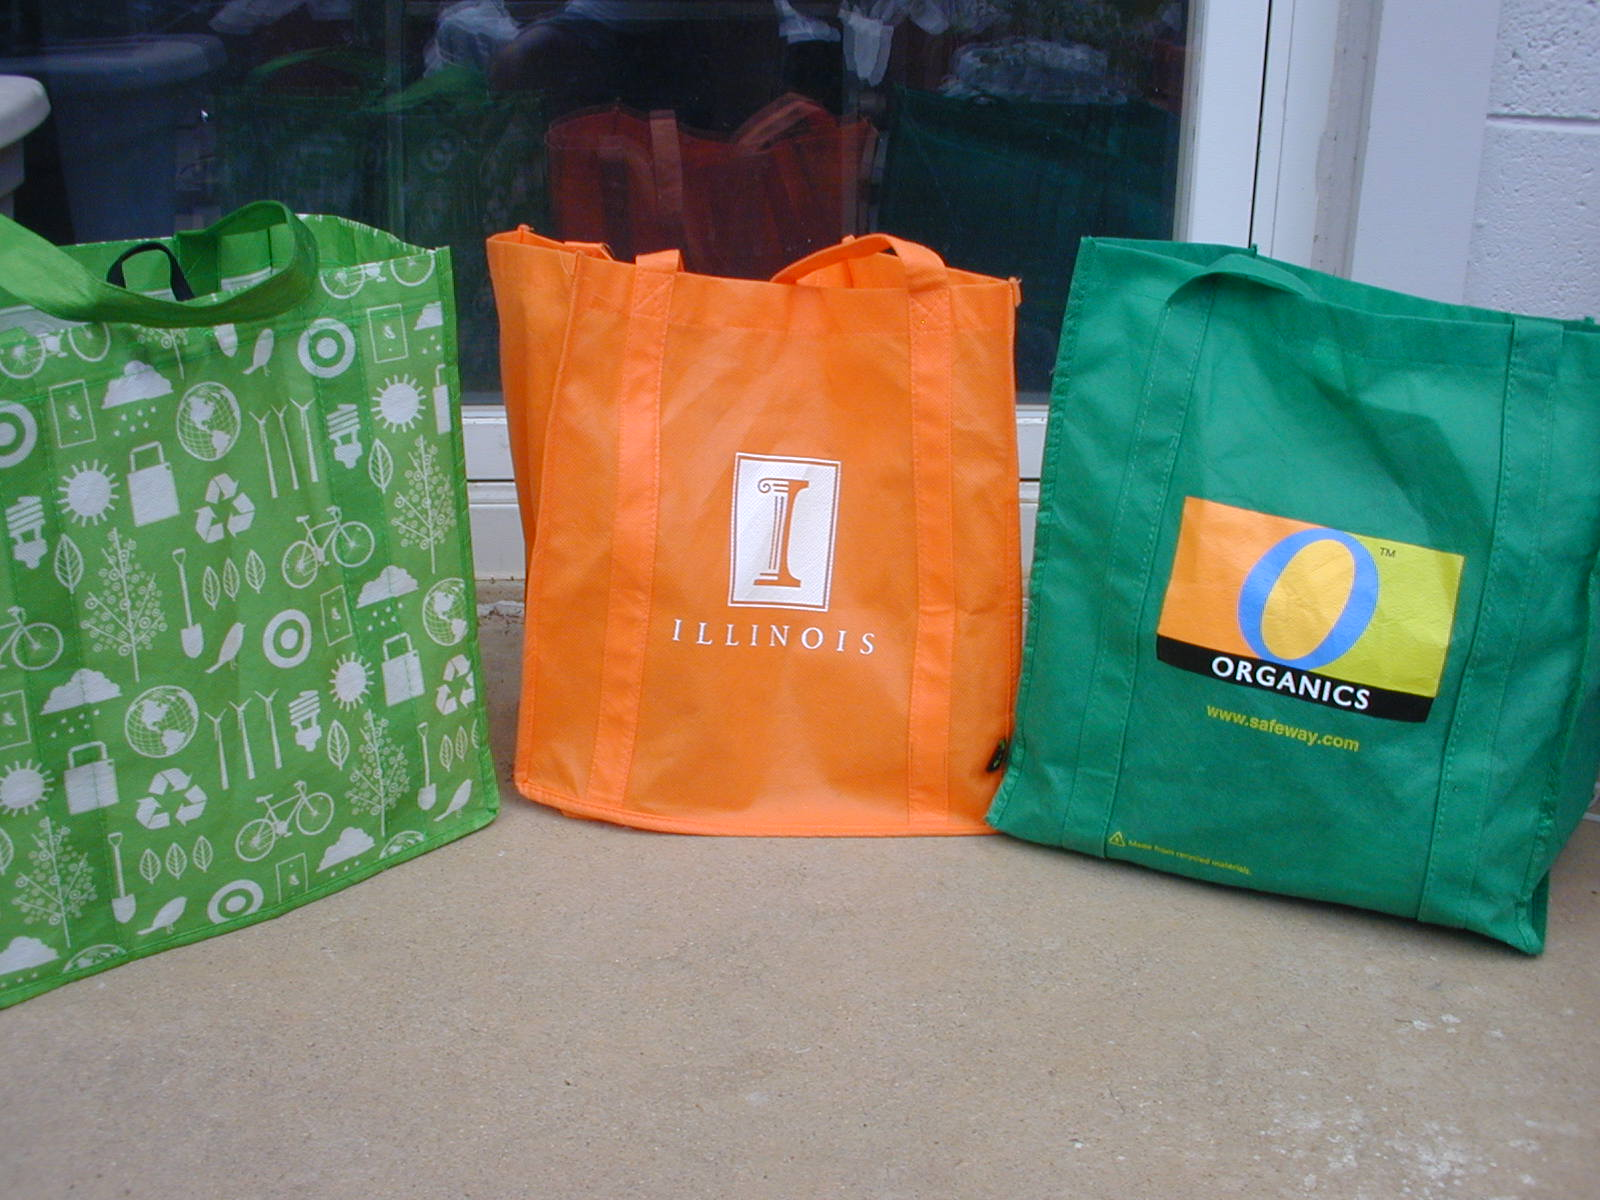 1) Reusable Shopping Bags. Pictured are some examples of the reusable shopping bags commonly found in the USA. Many are given away for free as promotions.